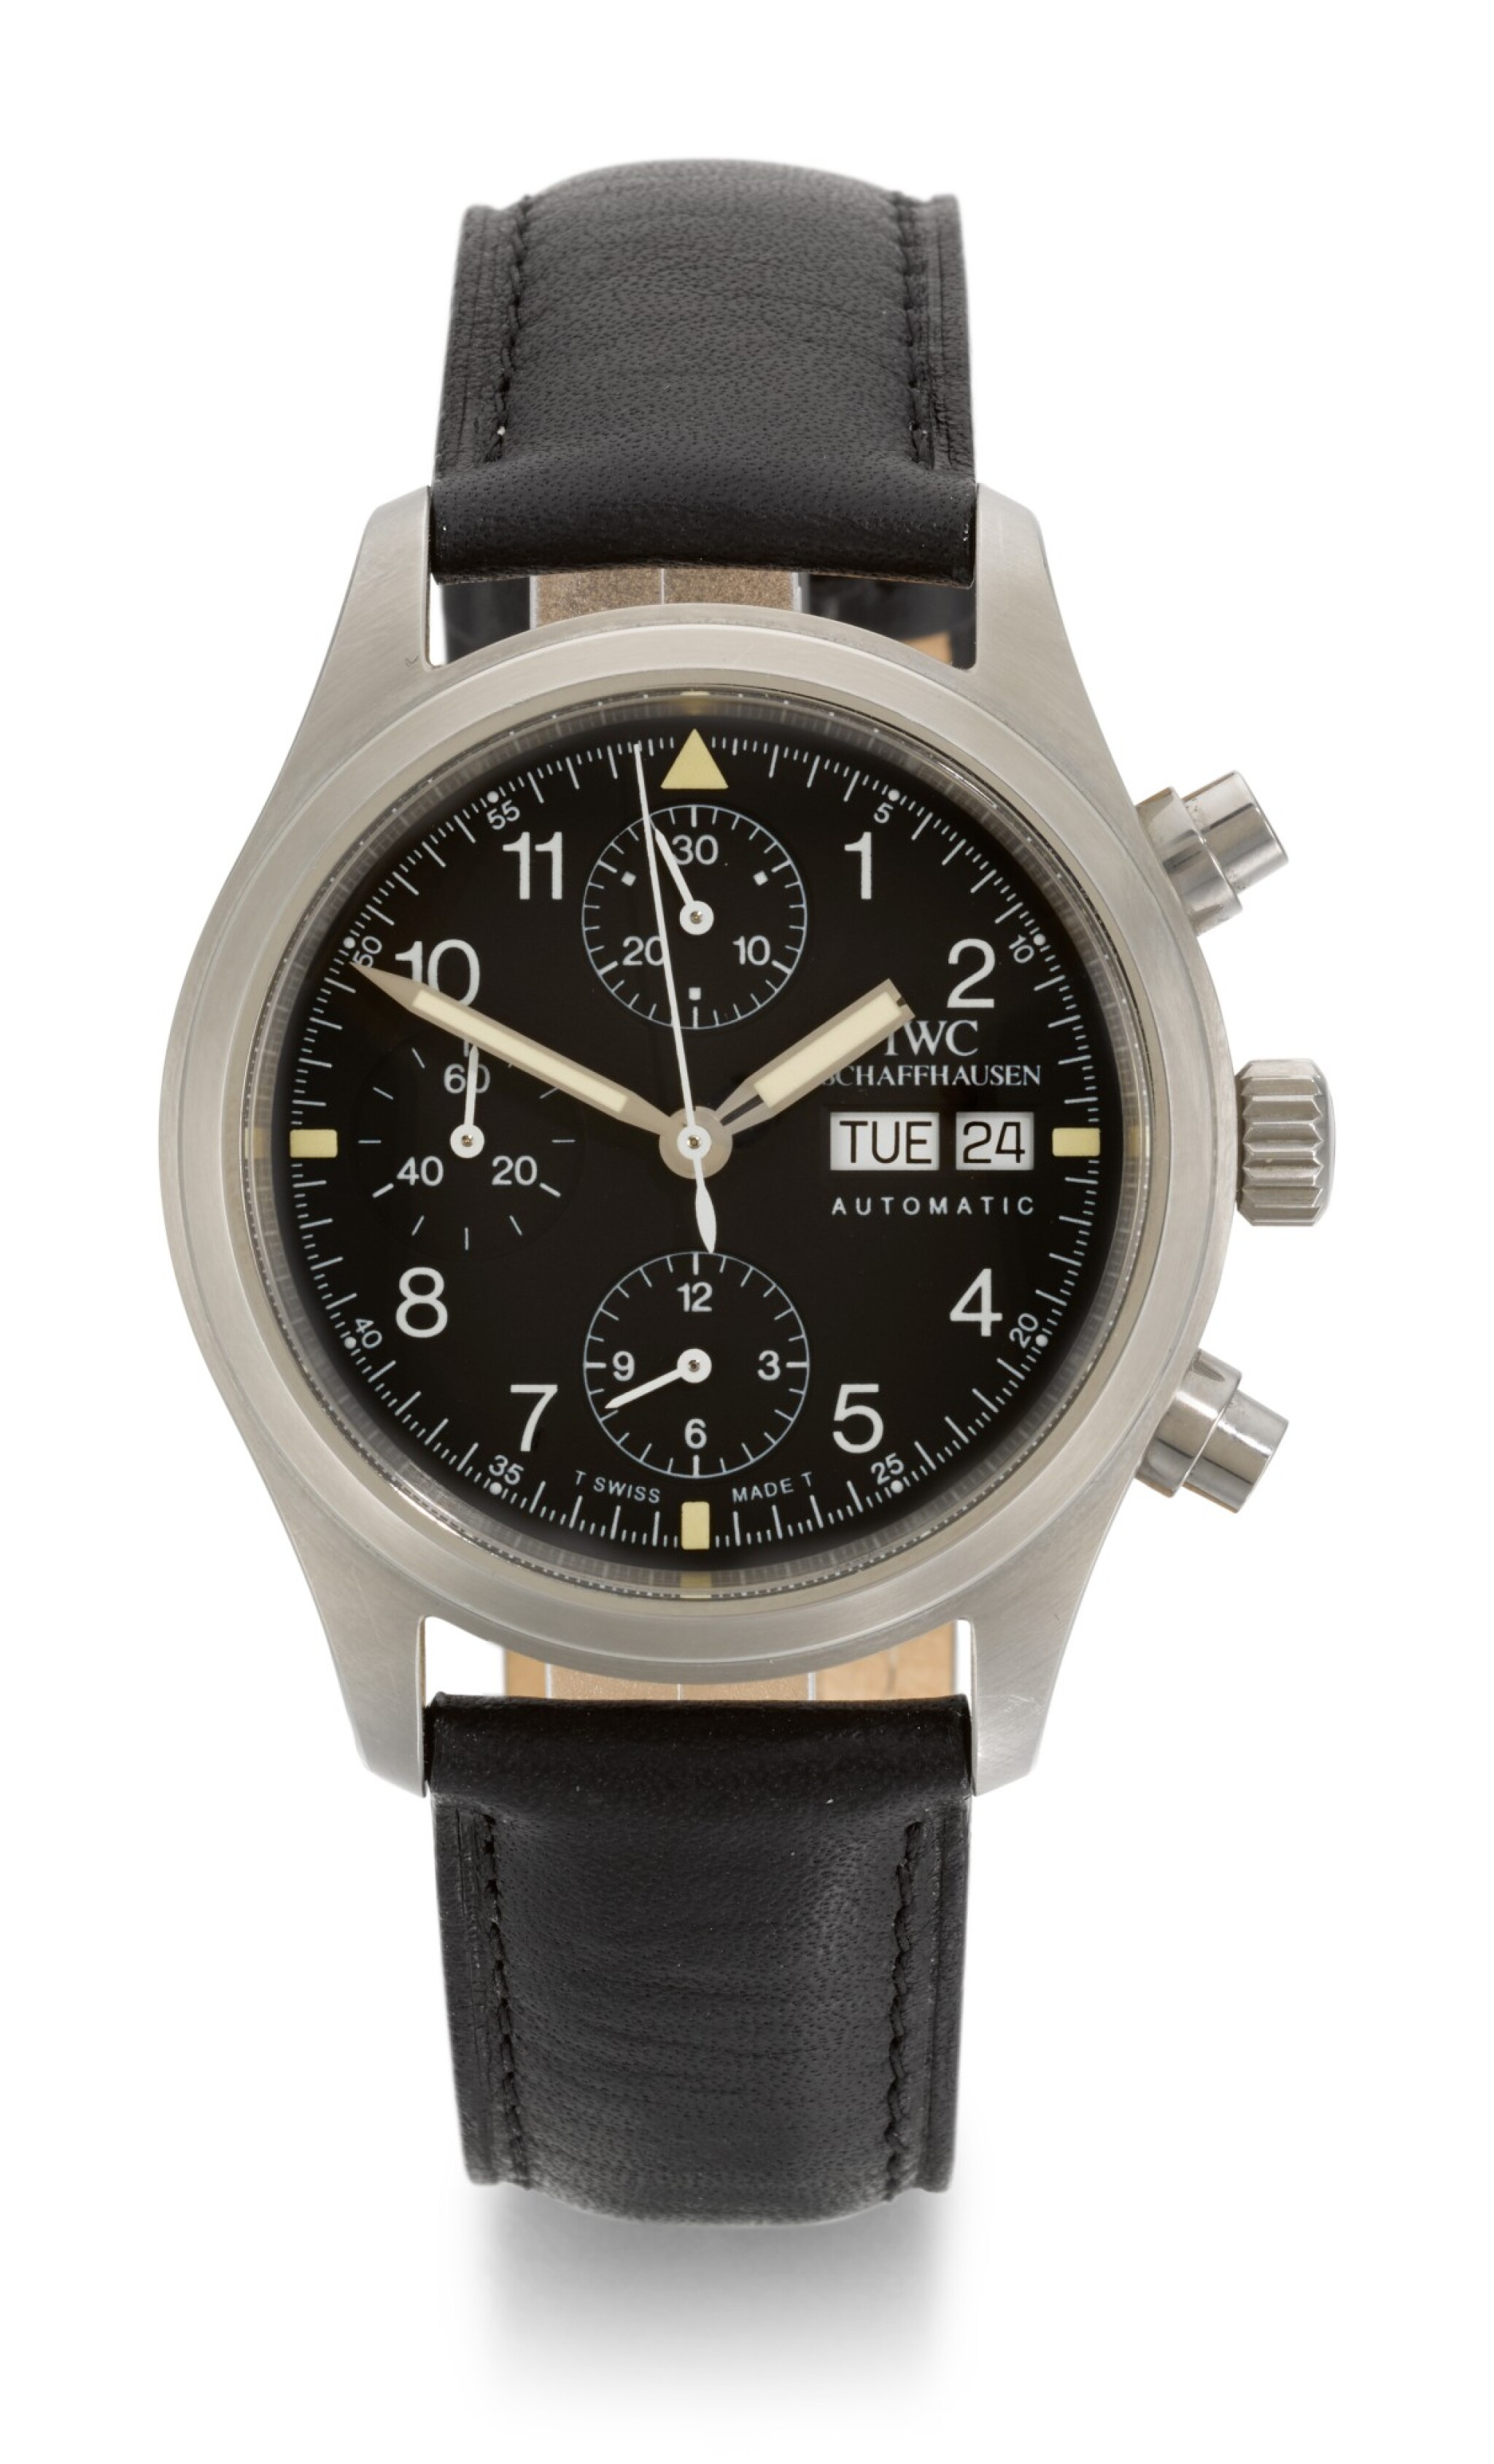 IWC | FLIEGERCHRONOGRAPH, REFERENCE 3706, STAINLESS STEEL CHRONOGRAPH WRISTWATCH WITH DAY AND DATE, CIRCA 2000